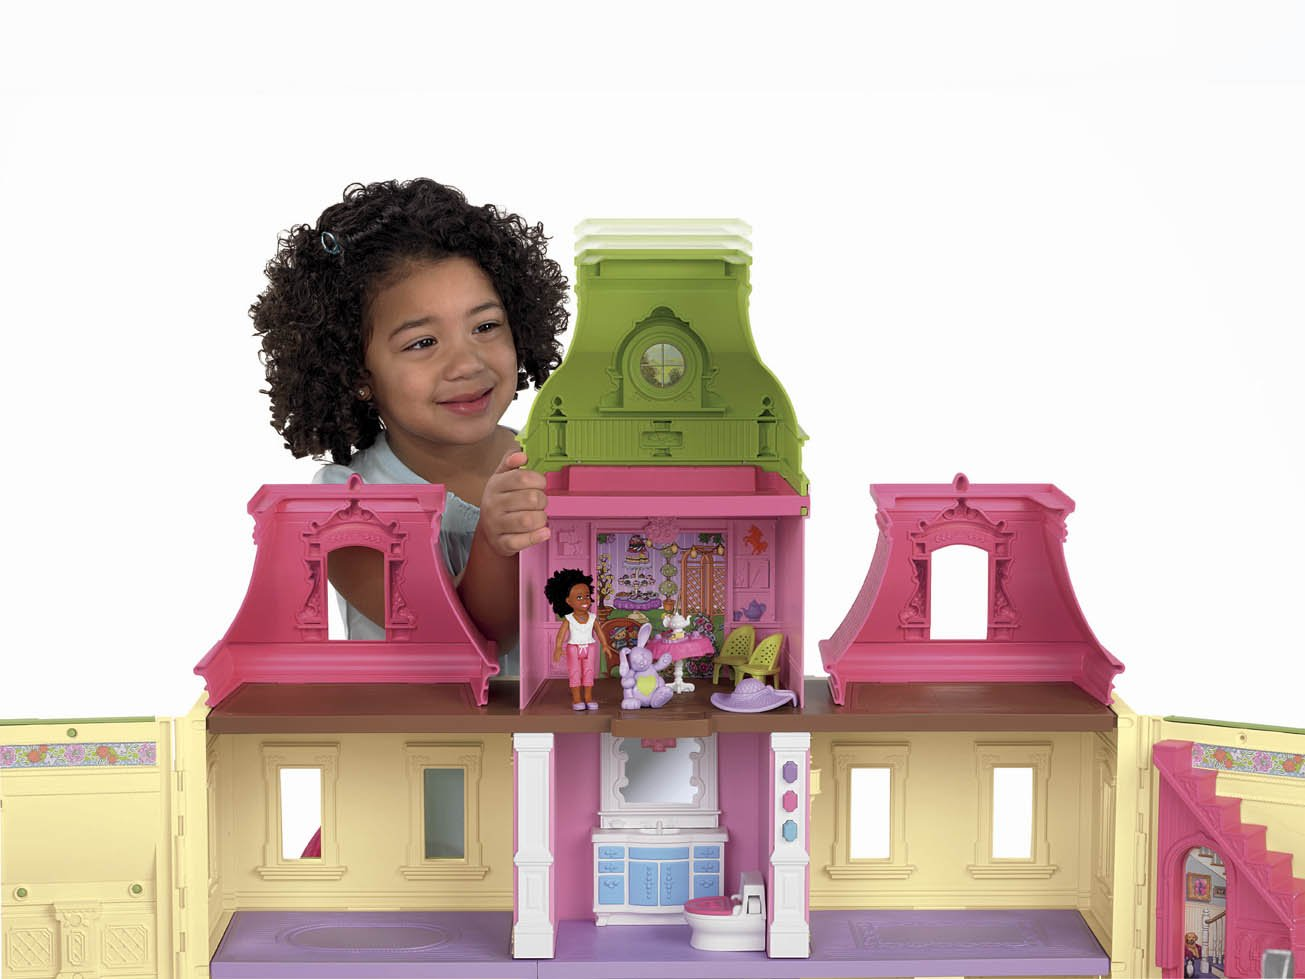 Perfect dollhouse for little girls for Young house love dollhouse